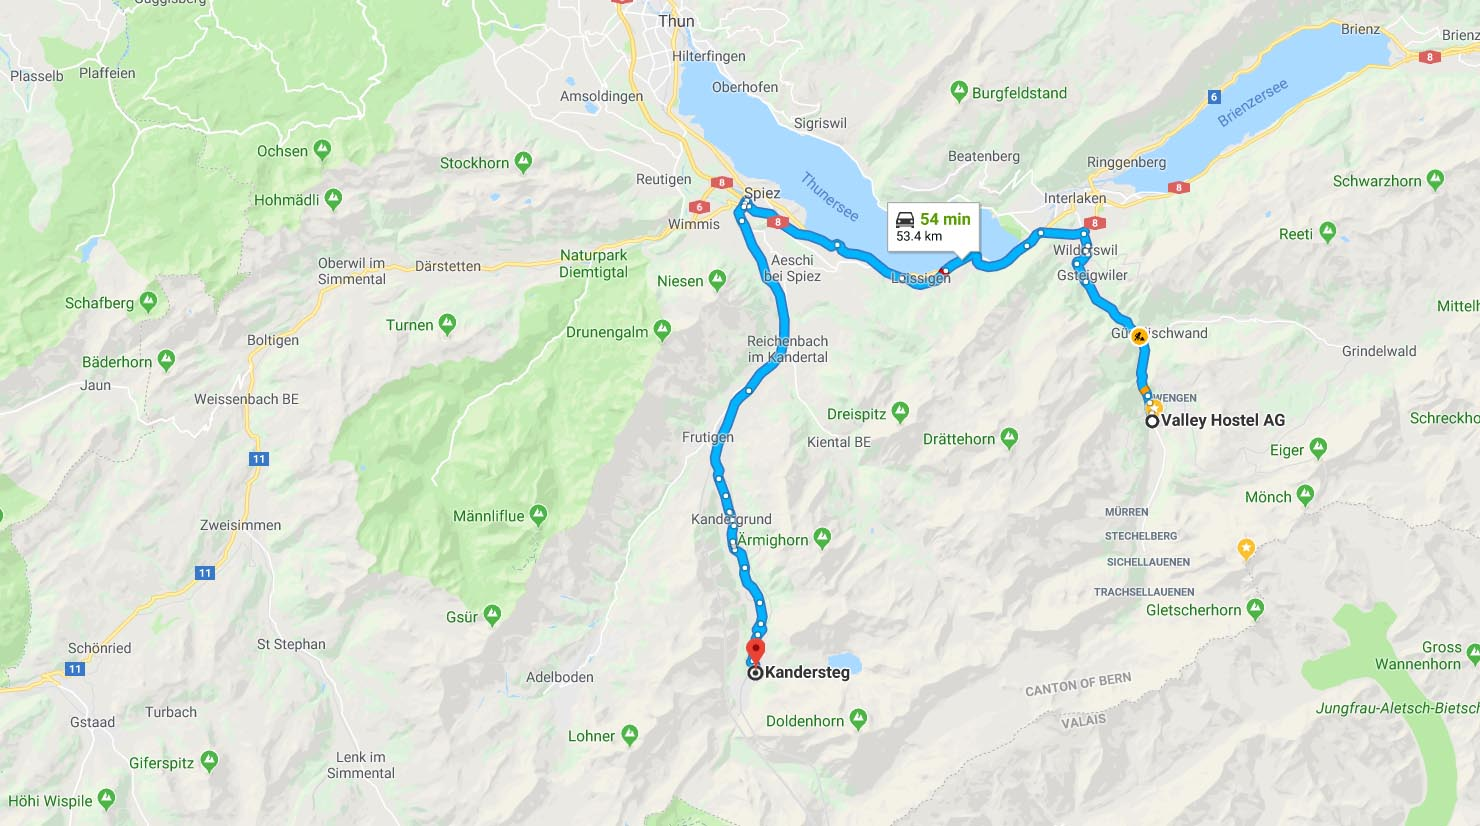 Route from Valley Hostel to start of Lotschberg tunnel